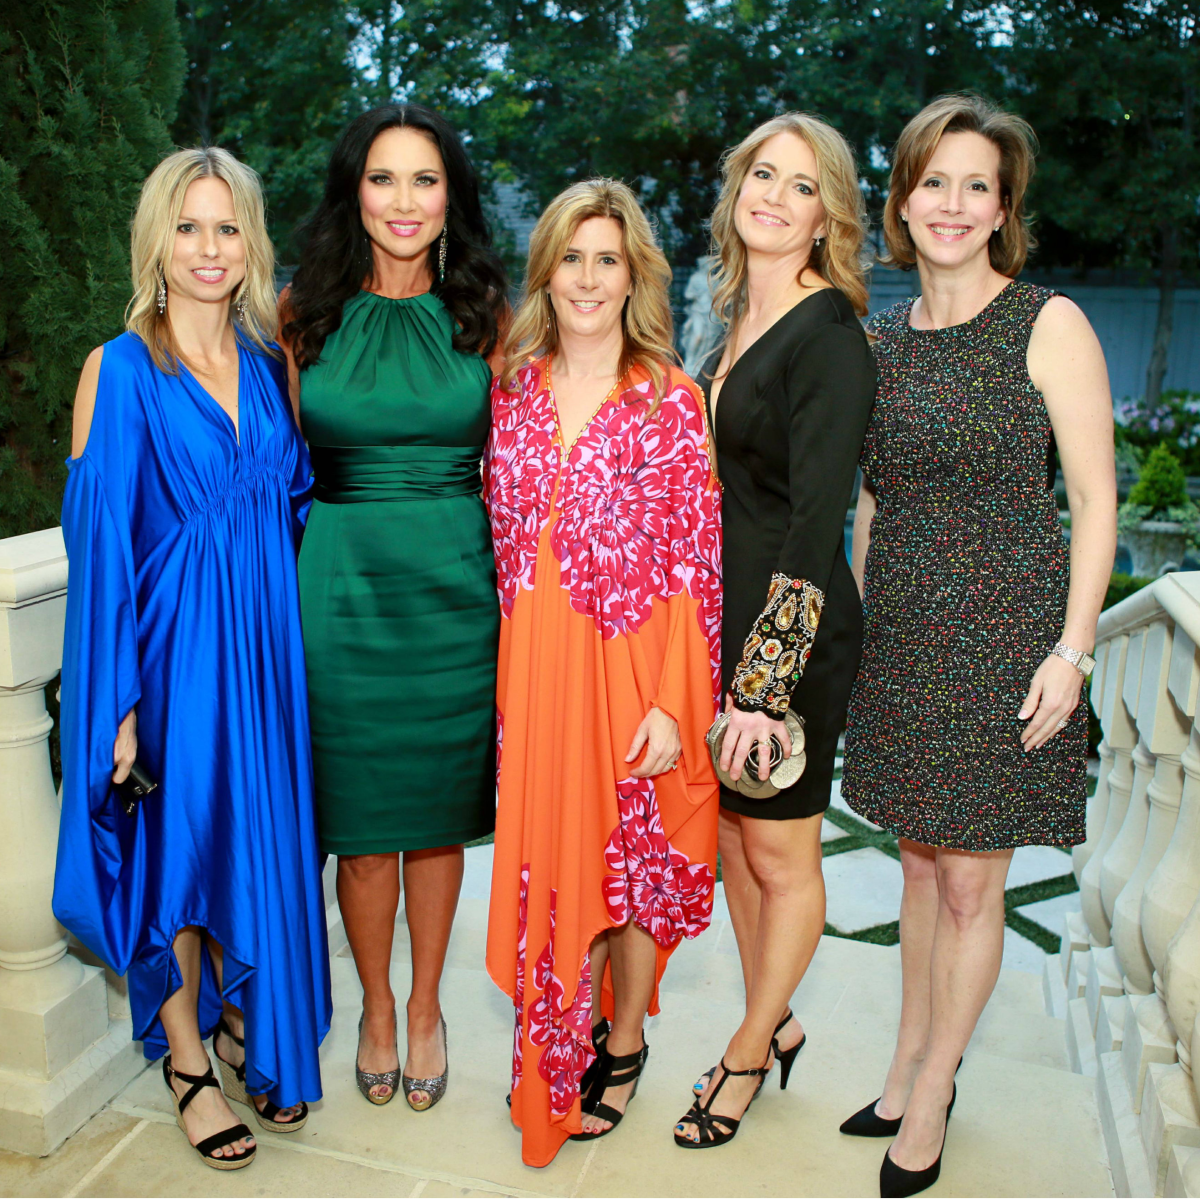 Missy Phipps, LeeAnne Locken, Melissa Cary, Holly Reed, Laura Downing